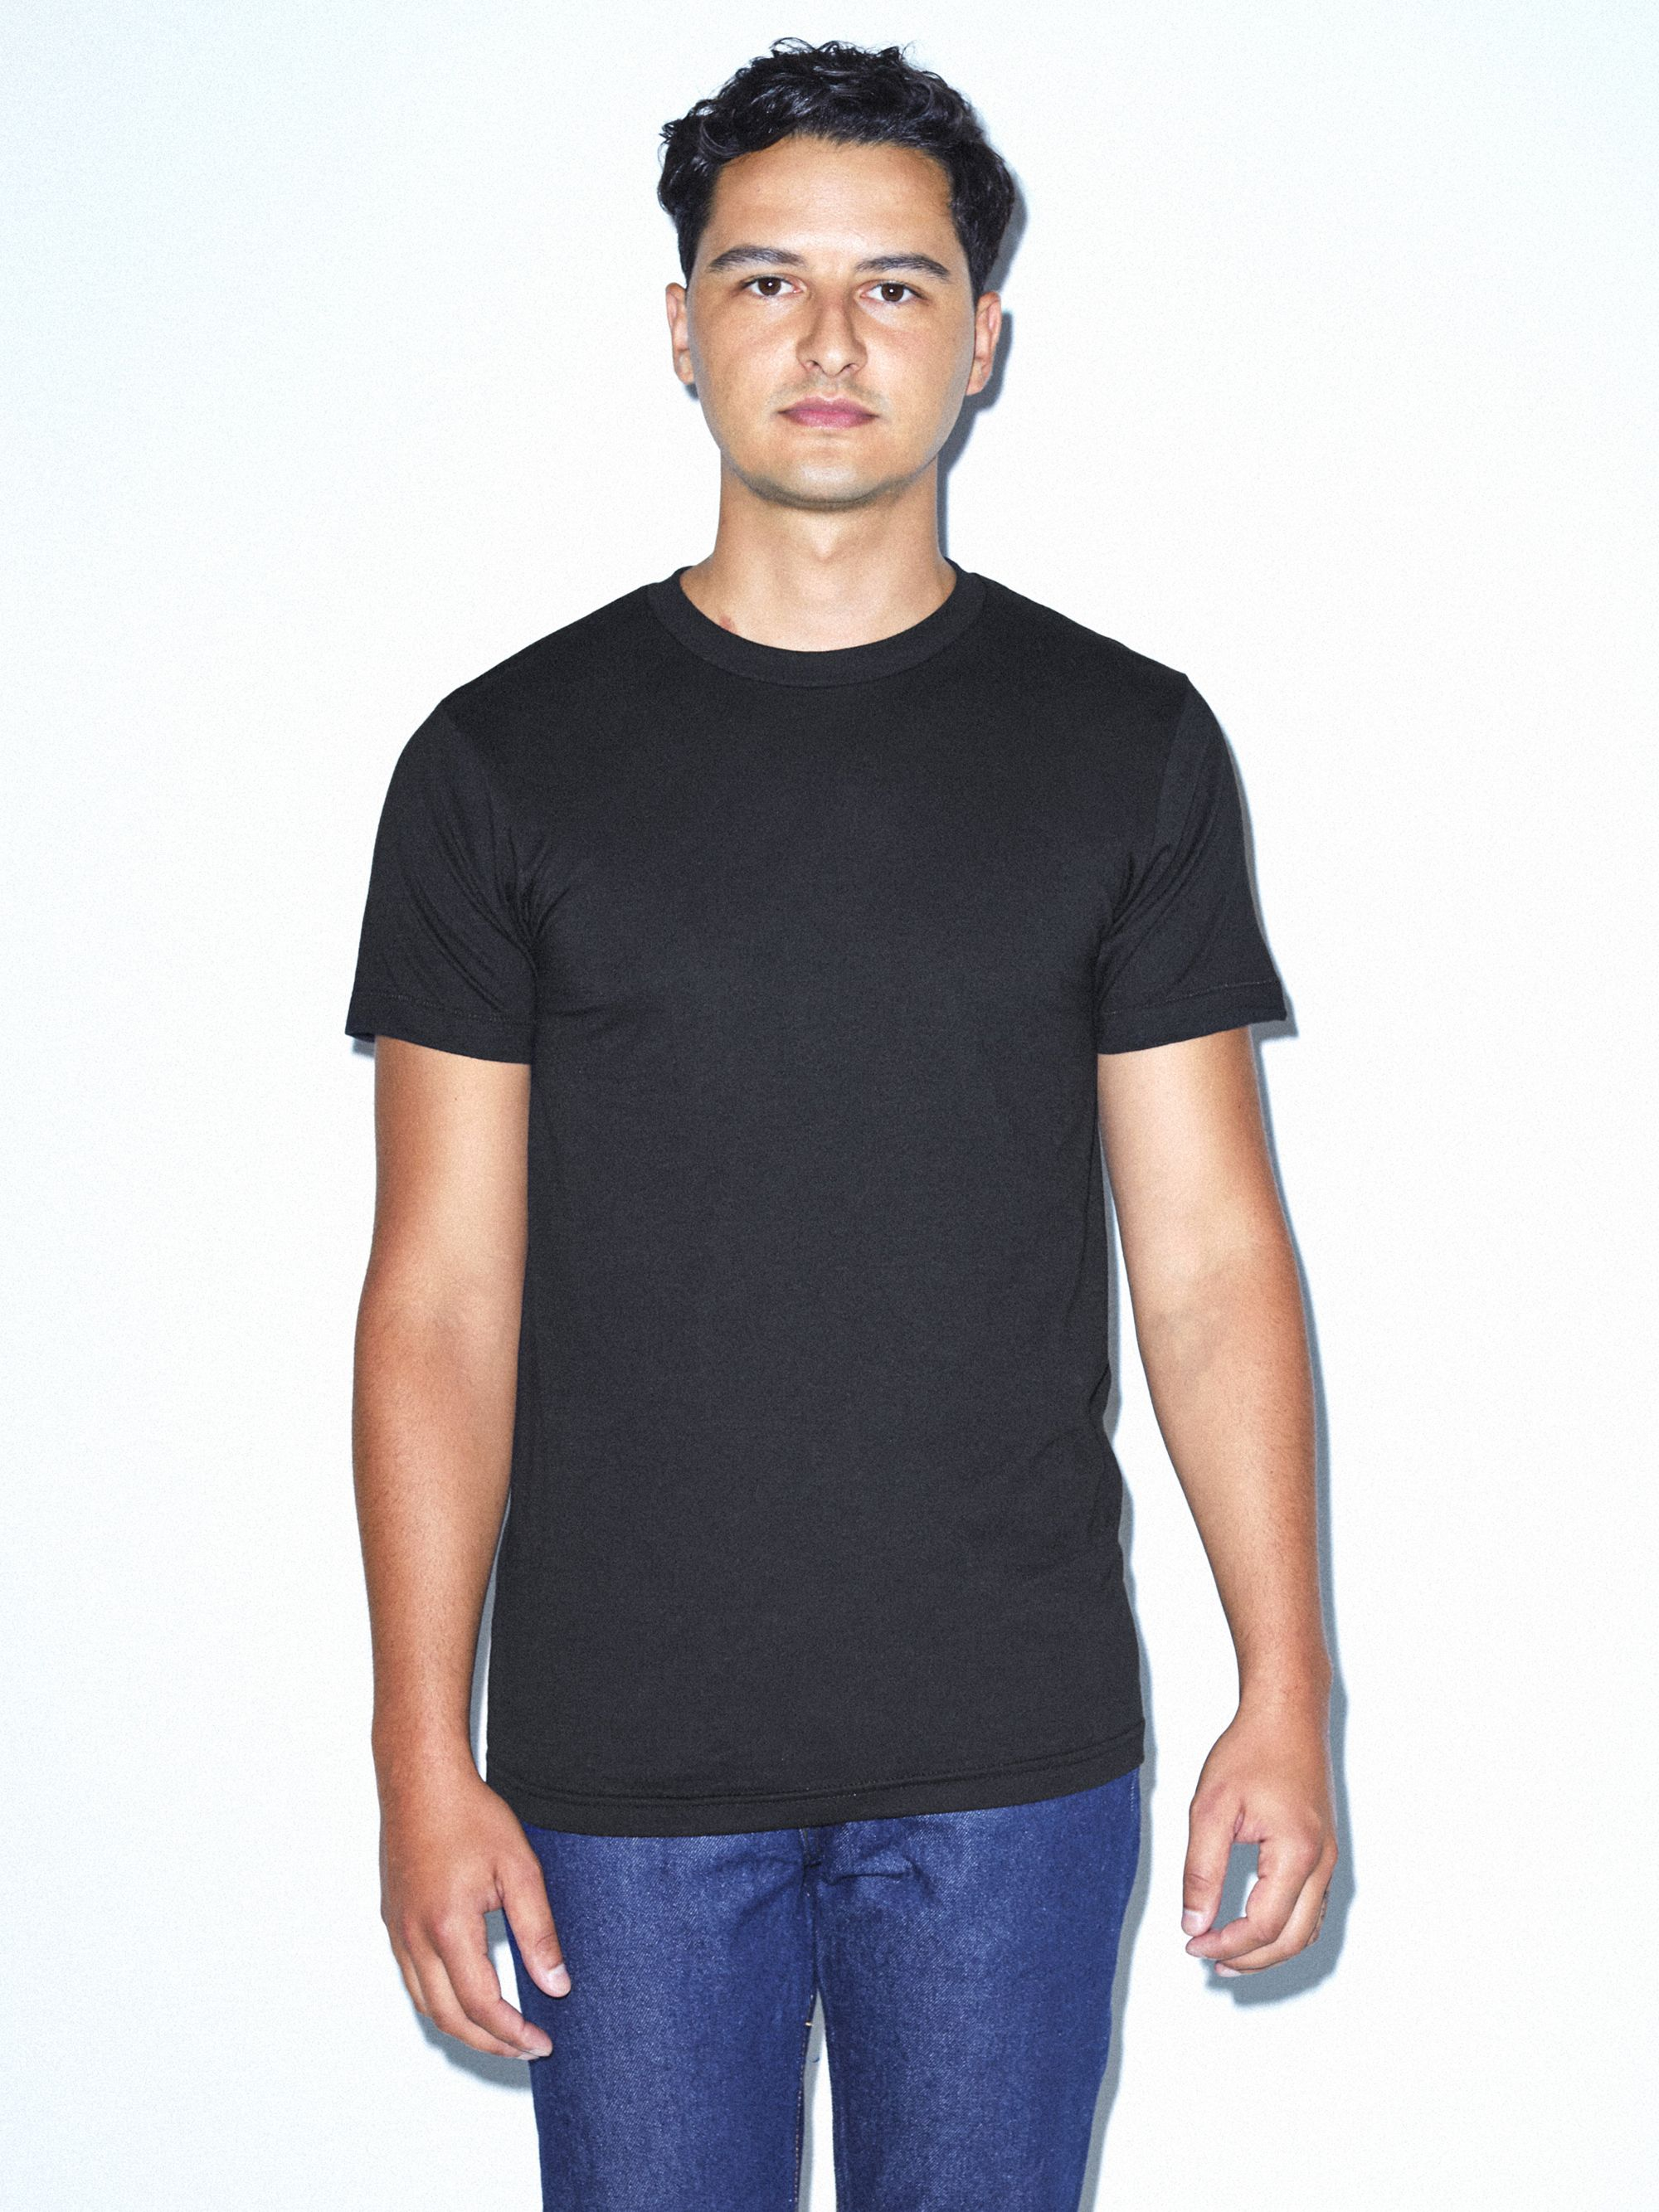 50/50 Crewneck T-Shirt | American Apparel